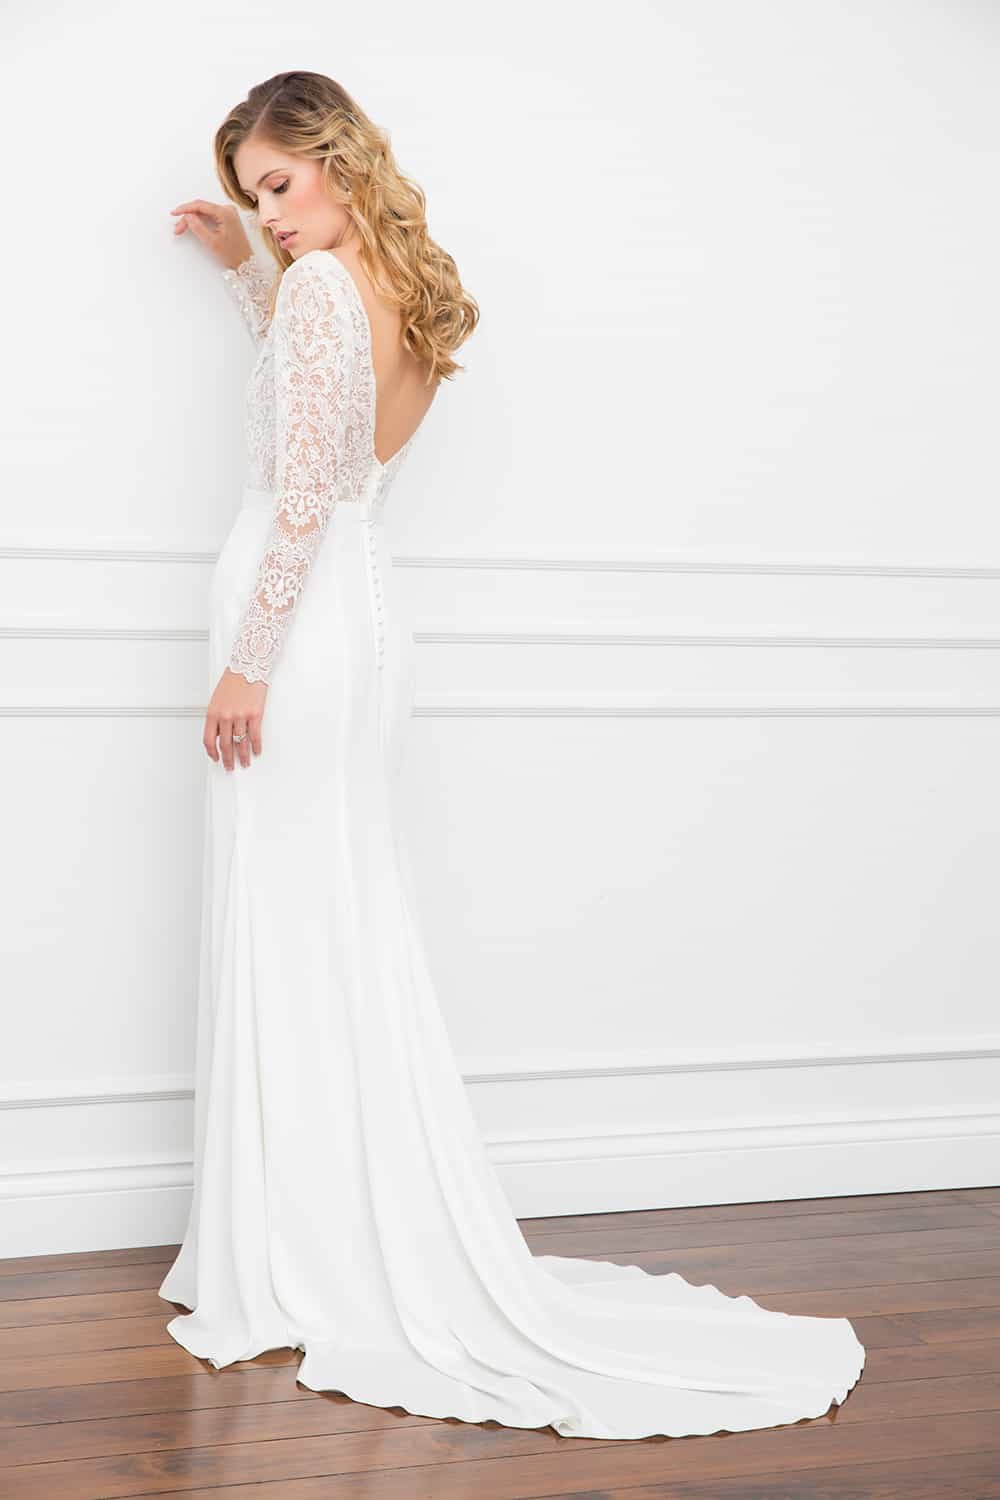 The Vanessa lace bodice with open back wedding gown from Wendy Makin Couture.